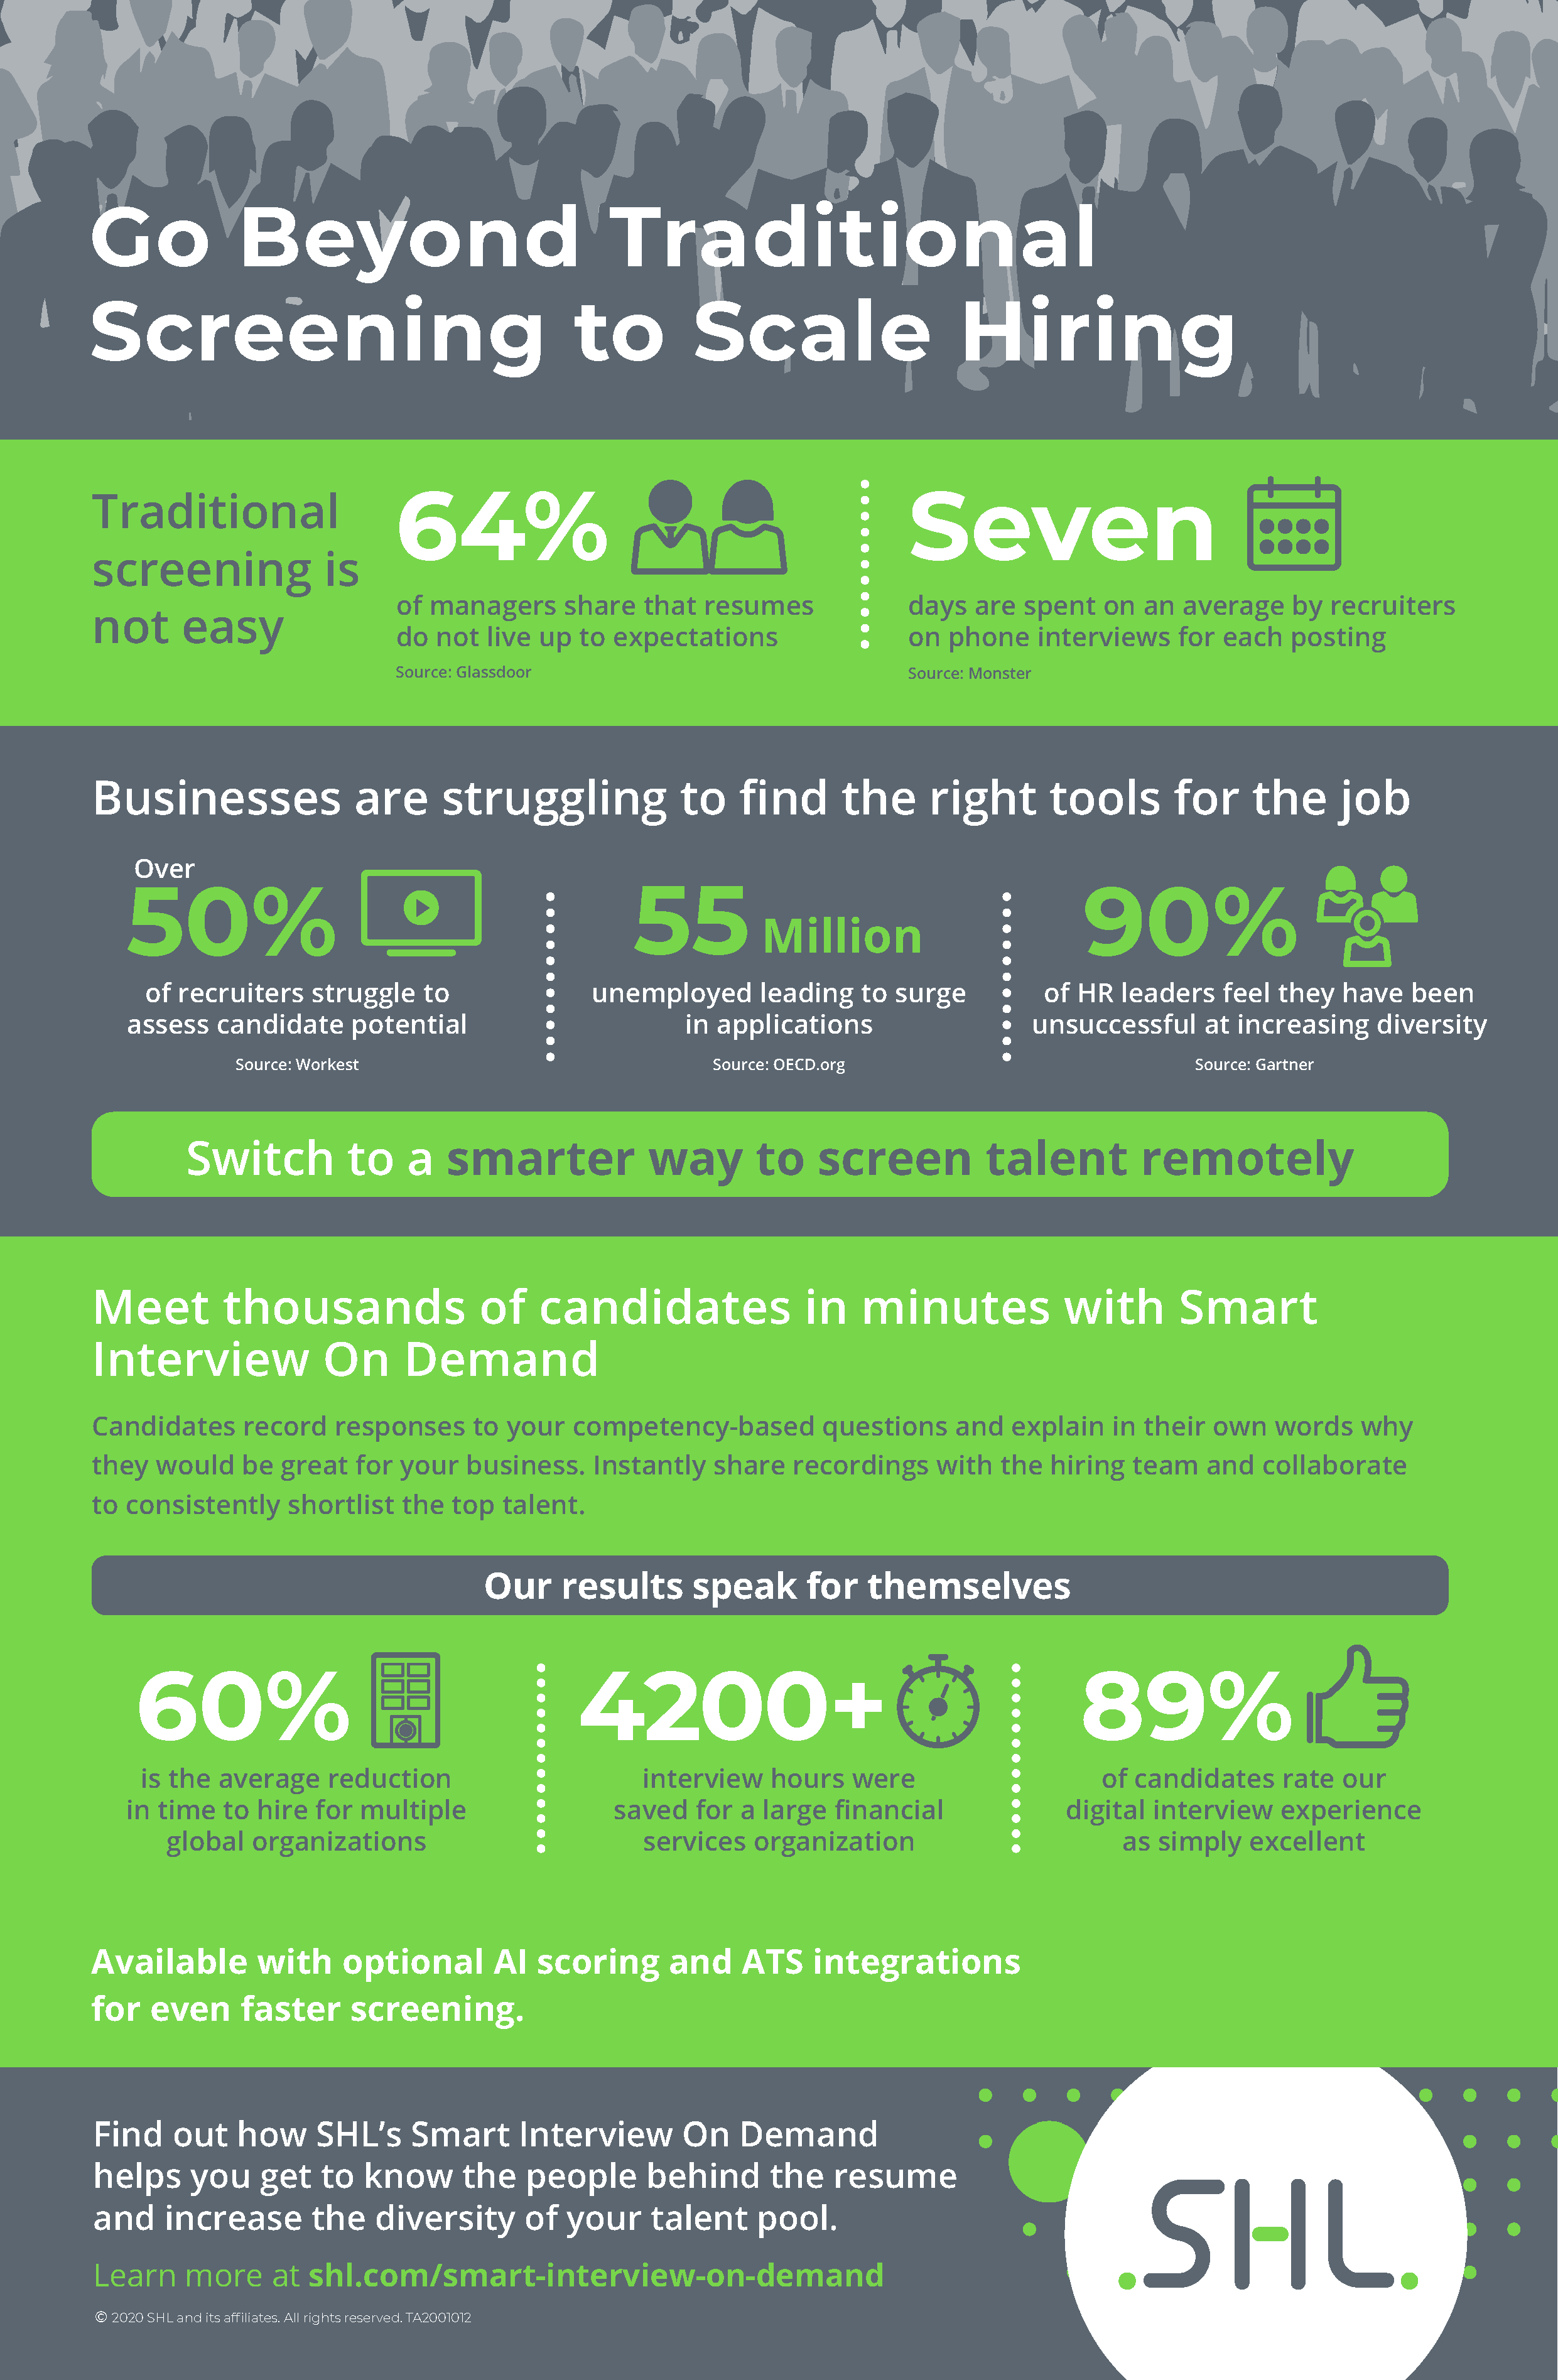 Go Beyond Traditional Screening | Video Interview Infographic